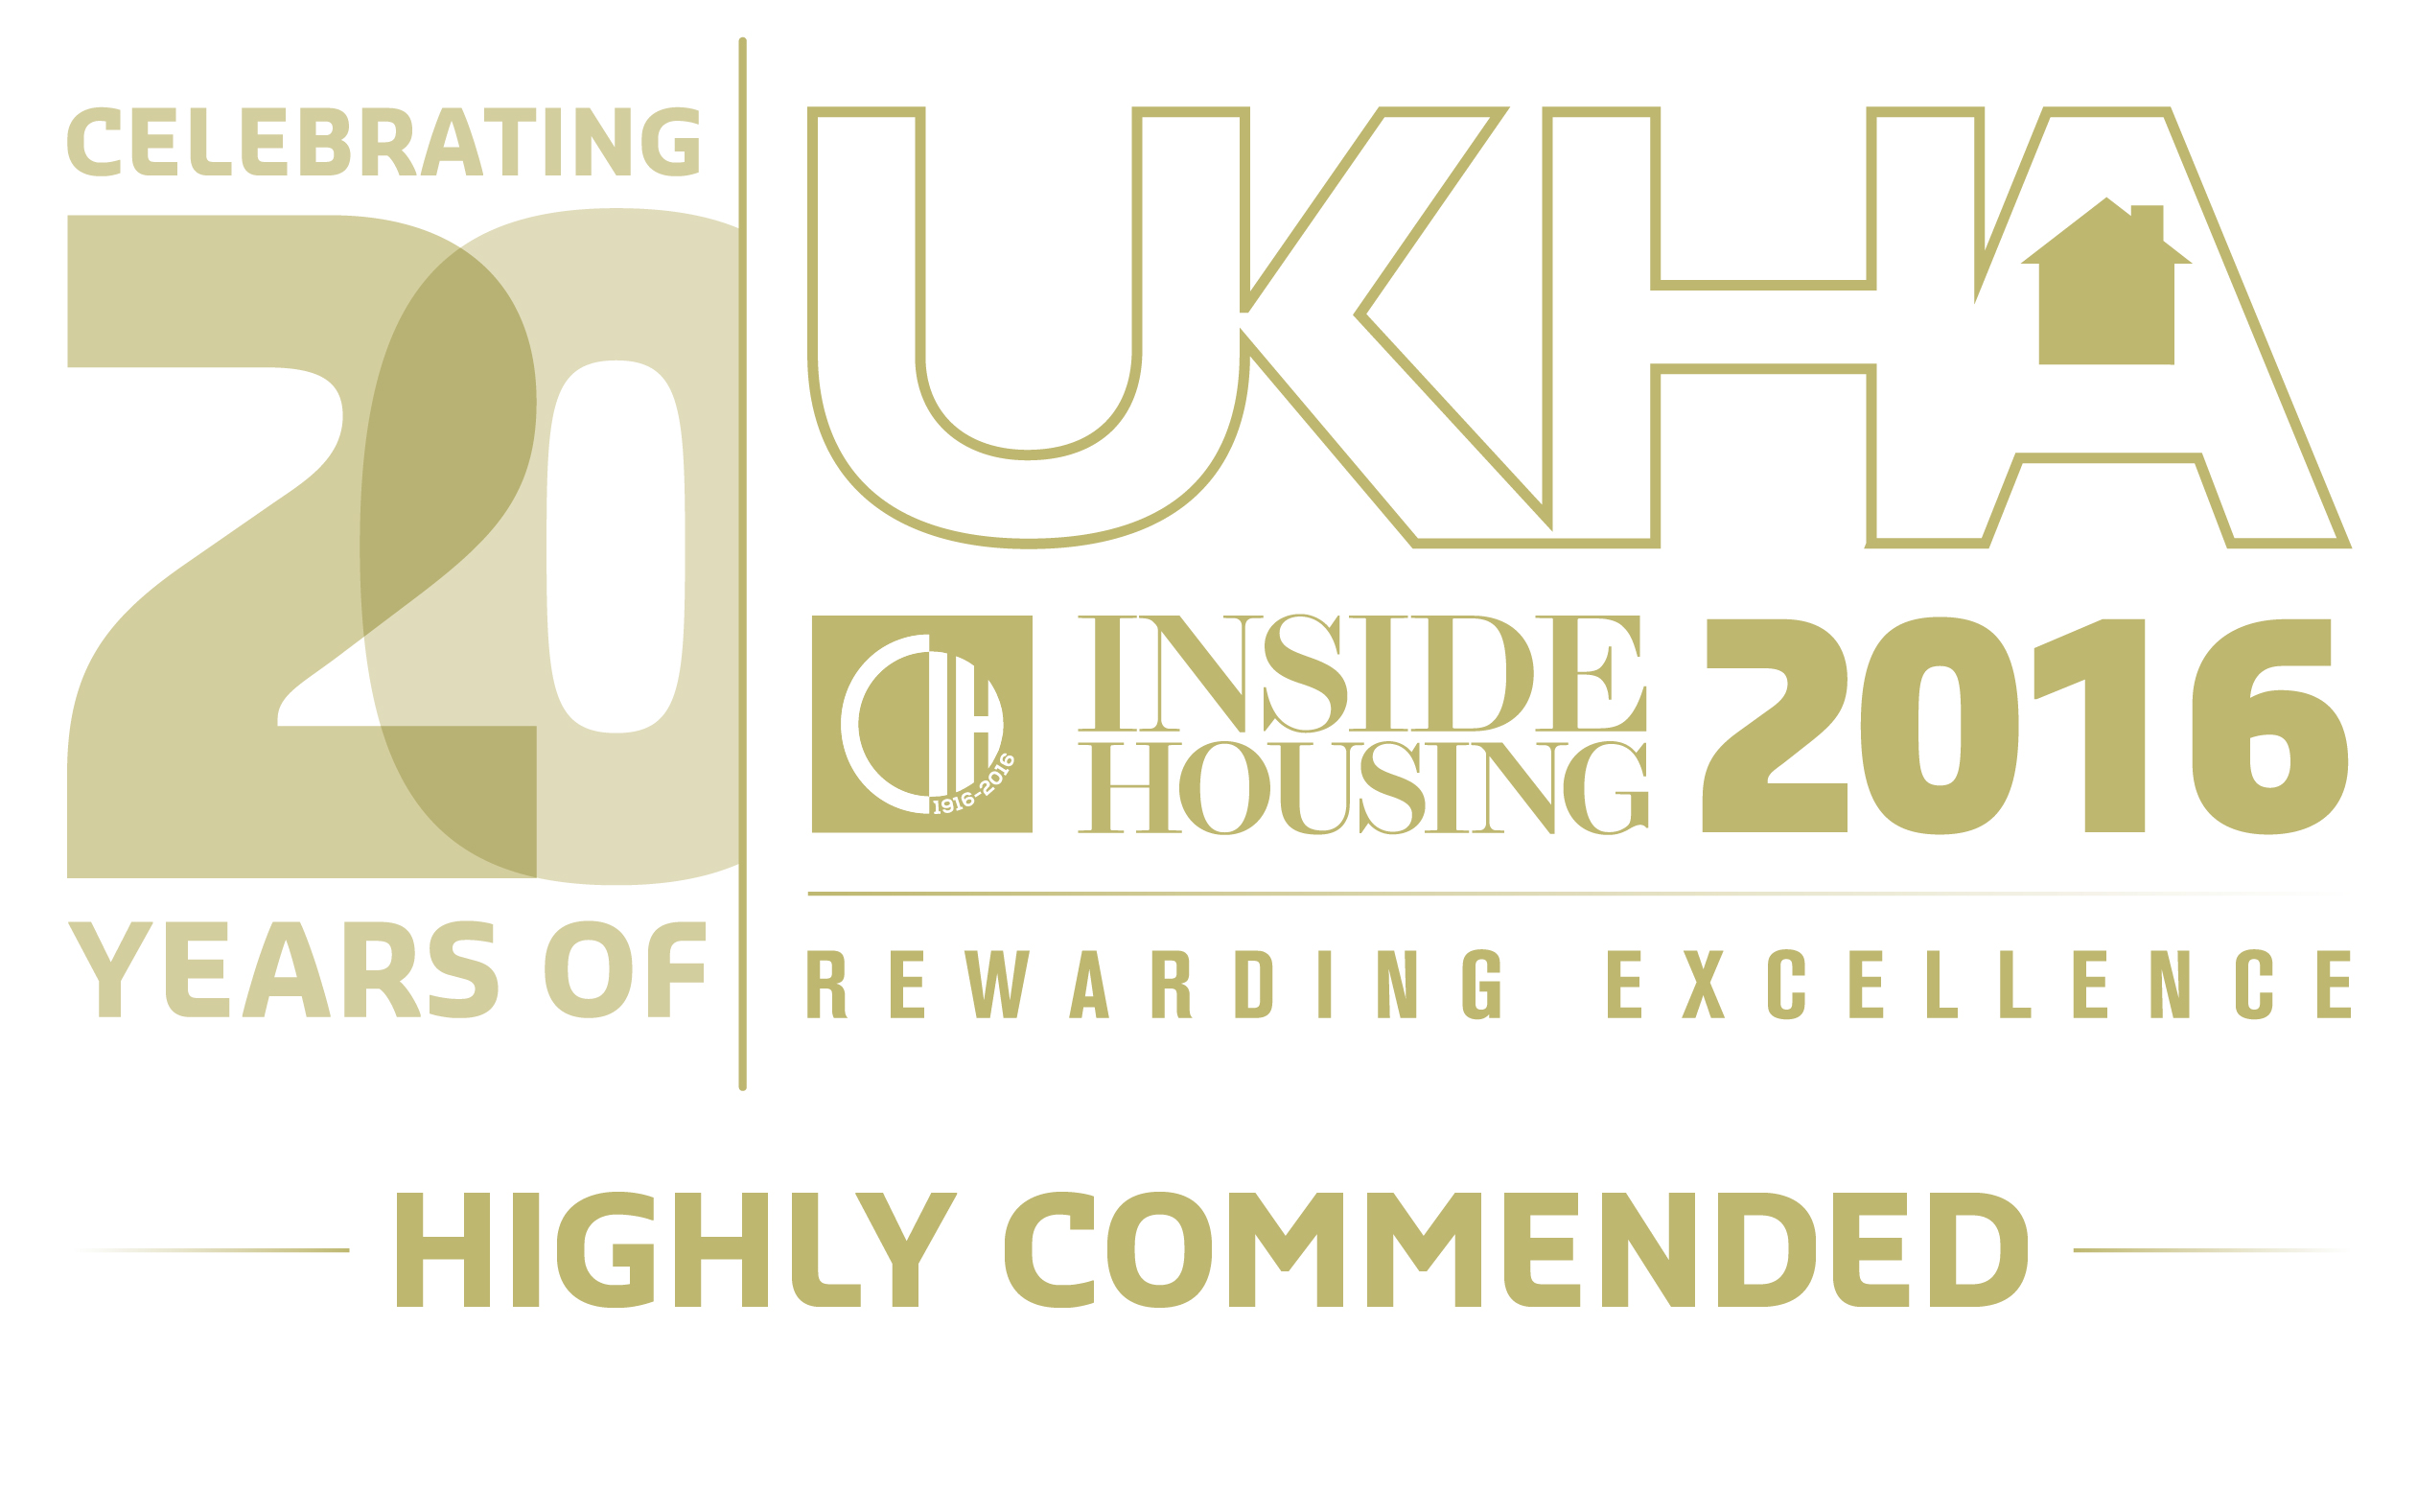 Phoenix Community Housing UK Housing Awards Highly Recommended